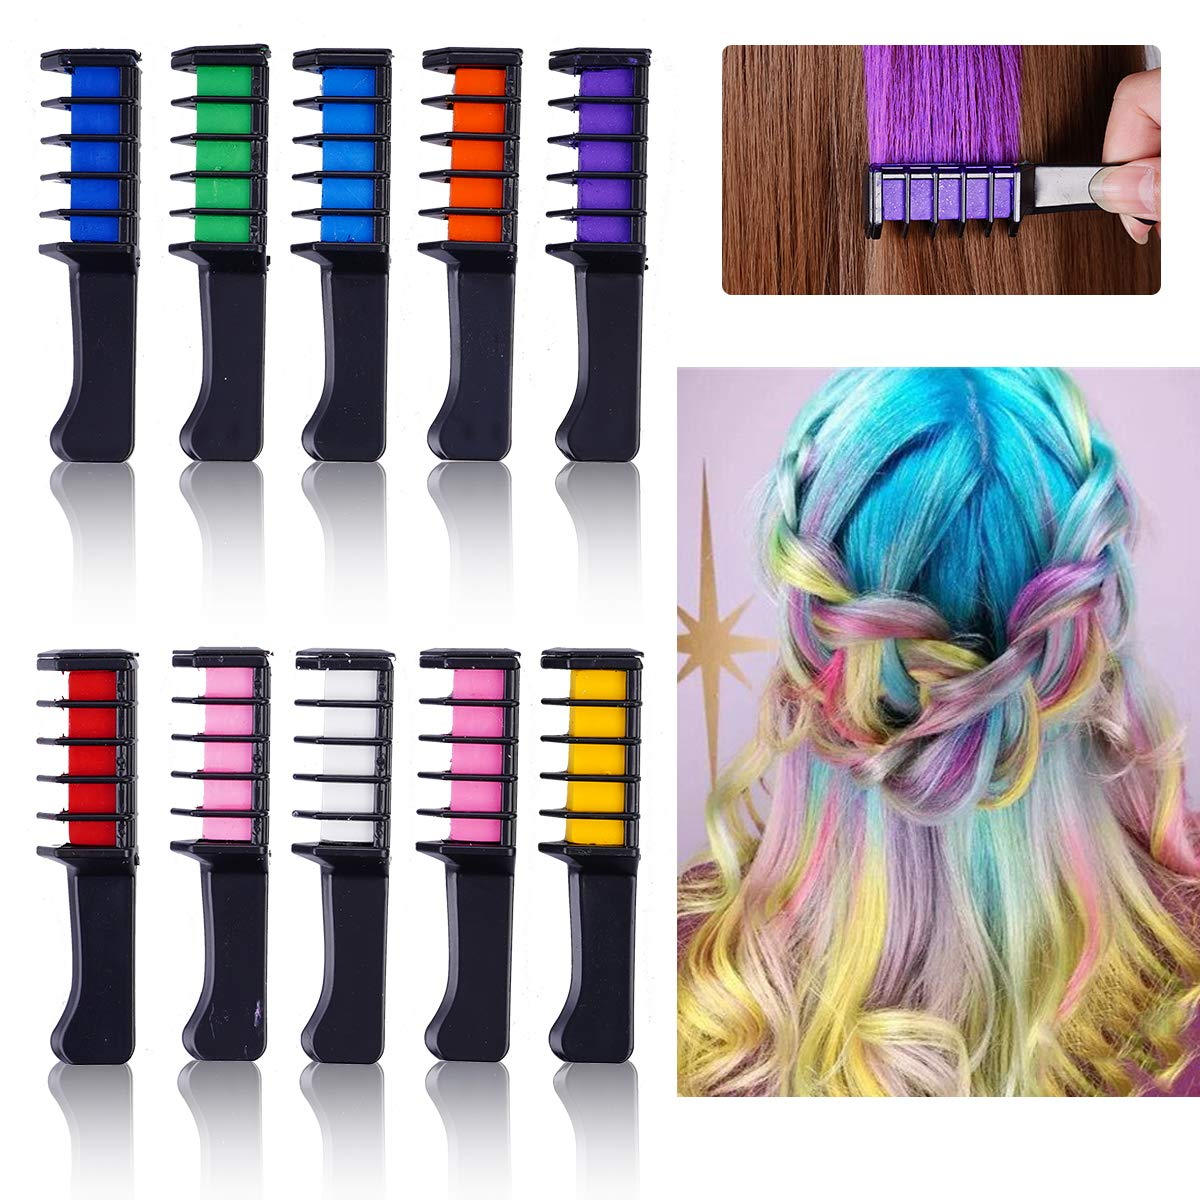 Hair Chalk Comb Set Nontoxic Temporary Diy Rainbow Highlighting Dye For Kids 10 Bright Vibrant Colorful Eco Safe No Mess Washable Wash Off Hair